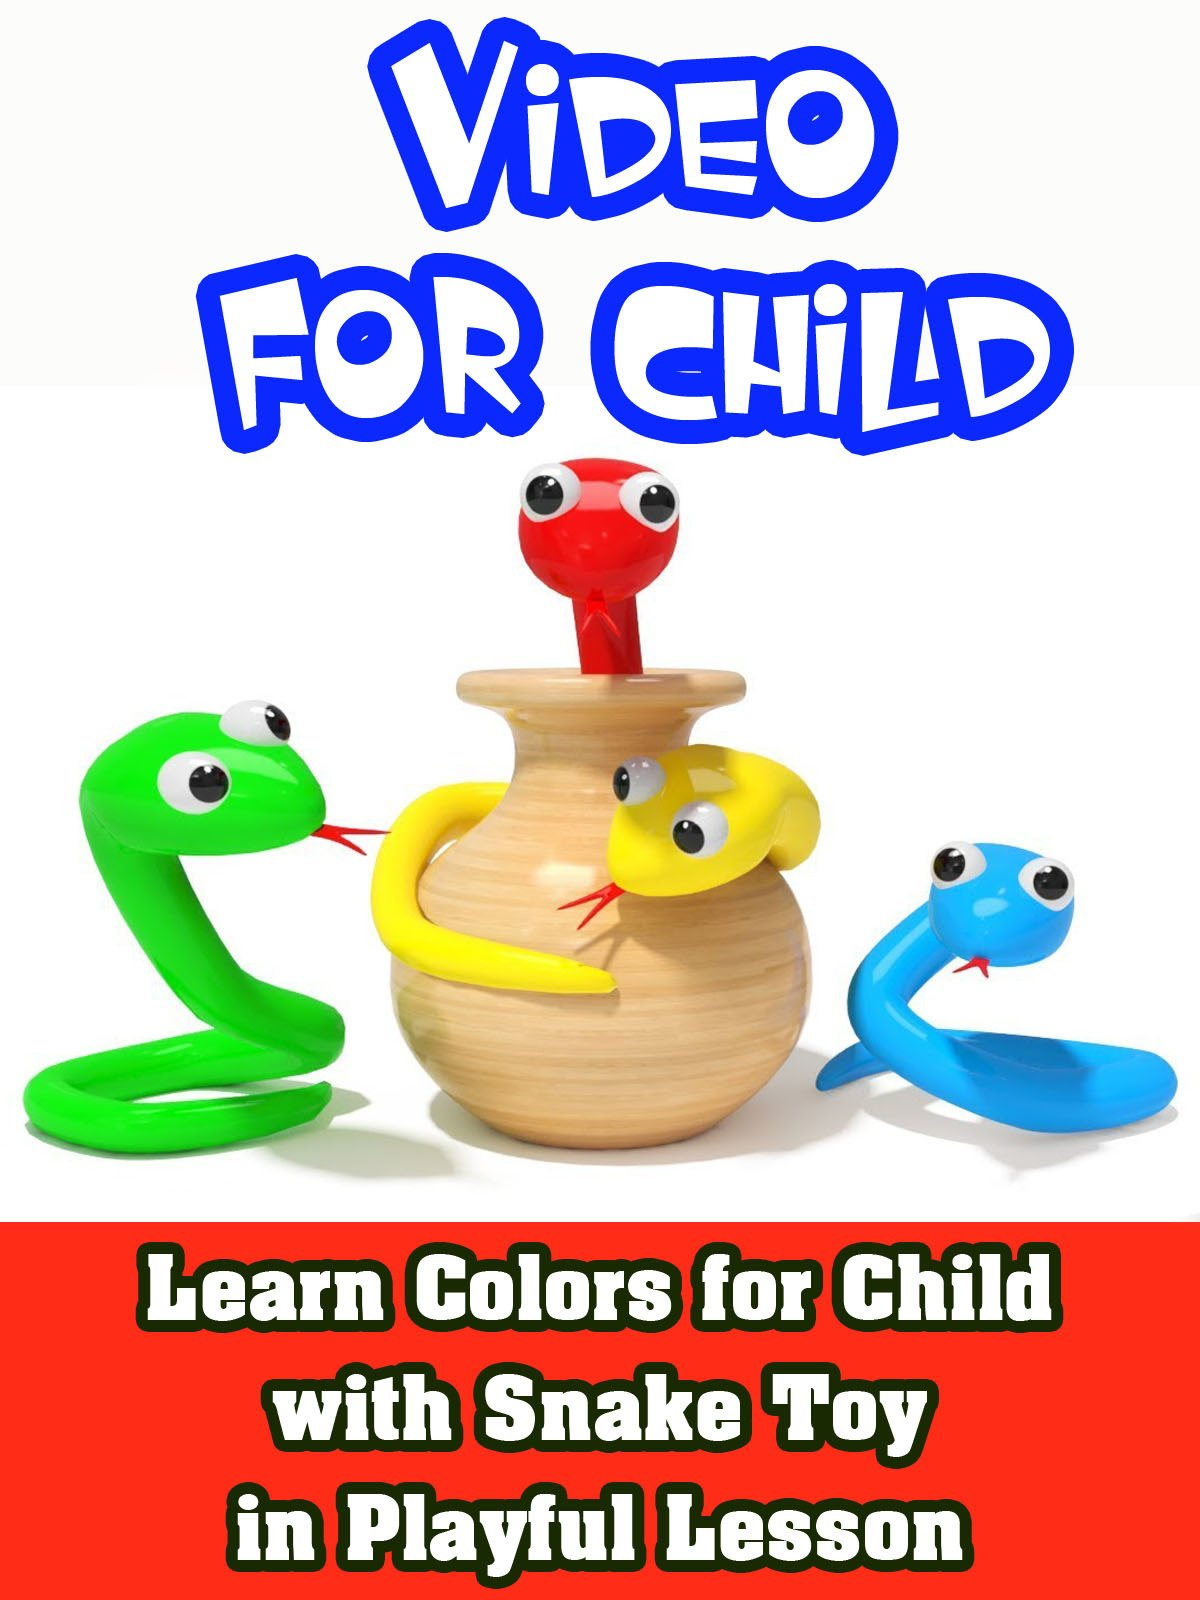 Learn Colors for Child with Snake Toy in playful lesson